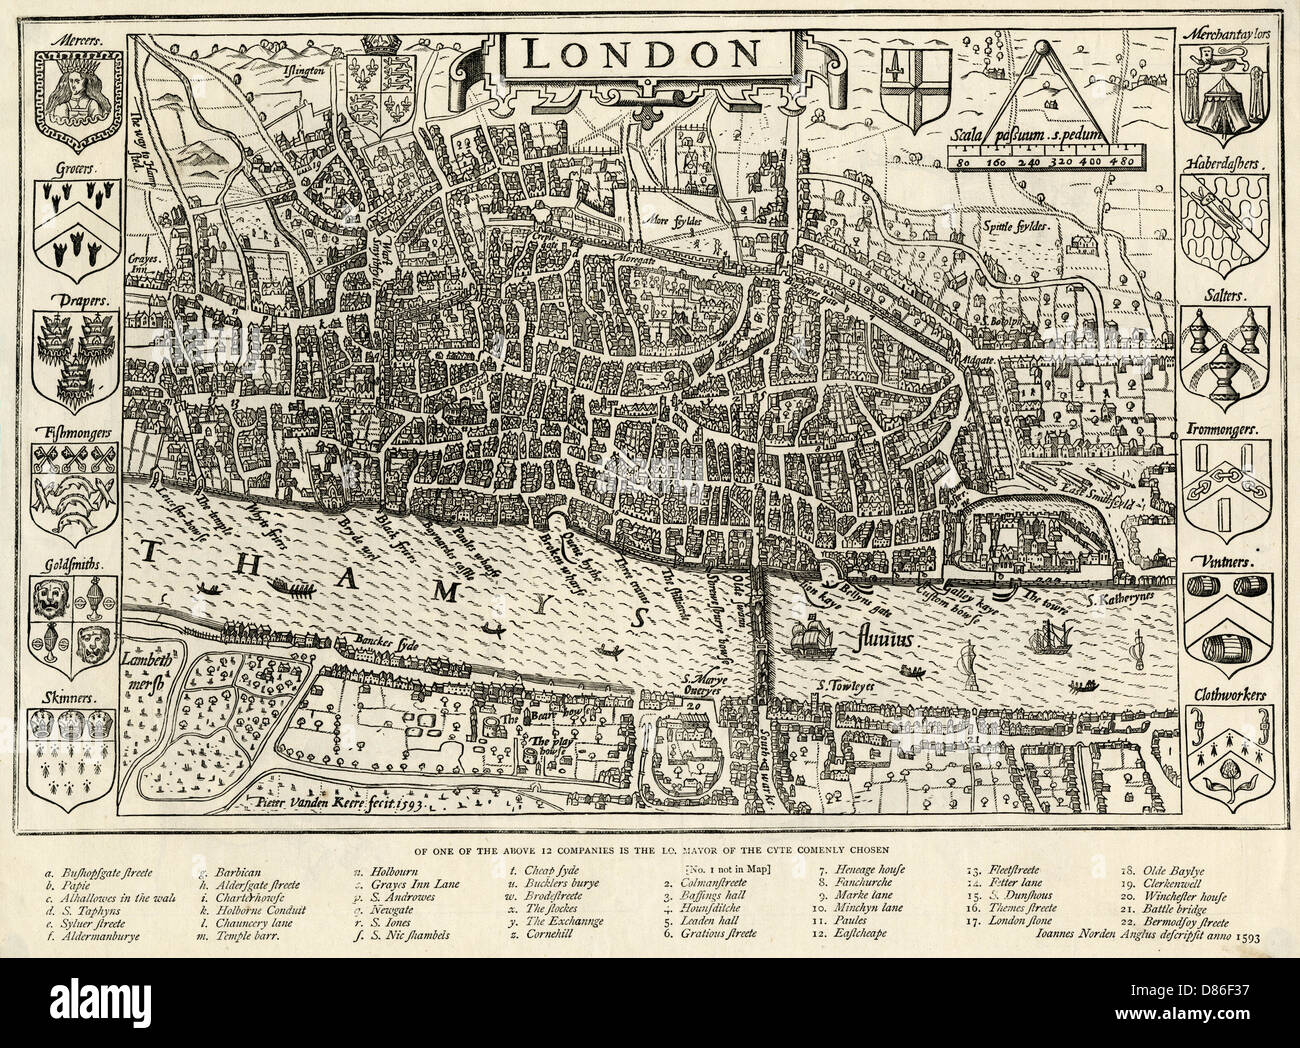 London In 1593 - Stock Image